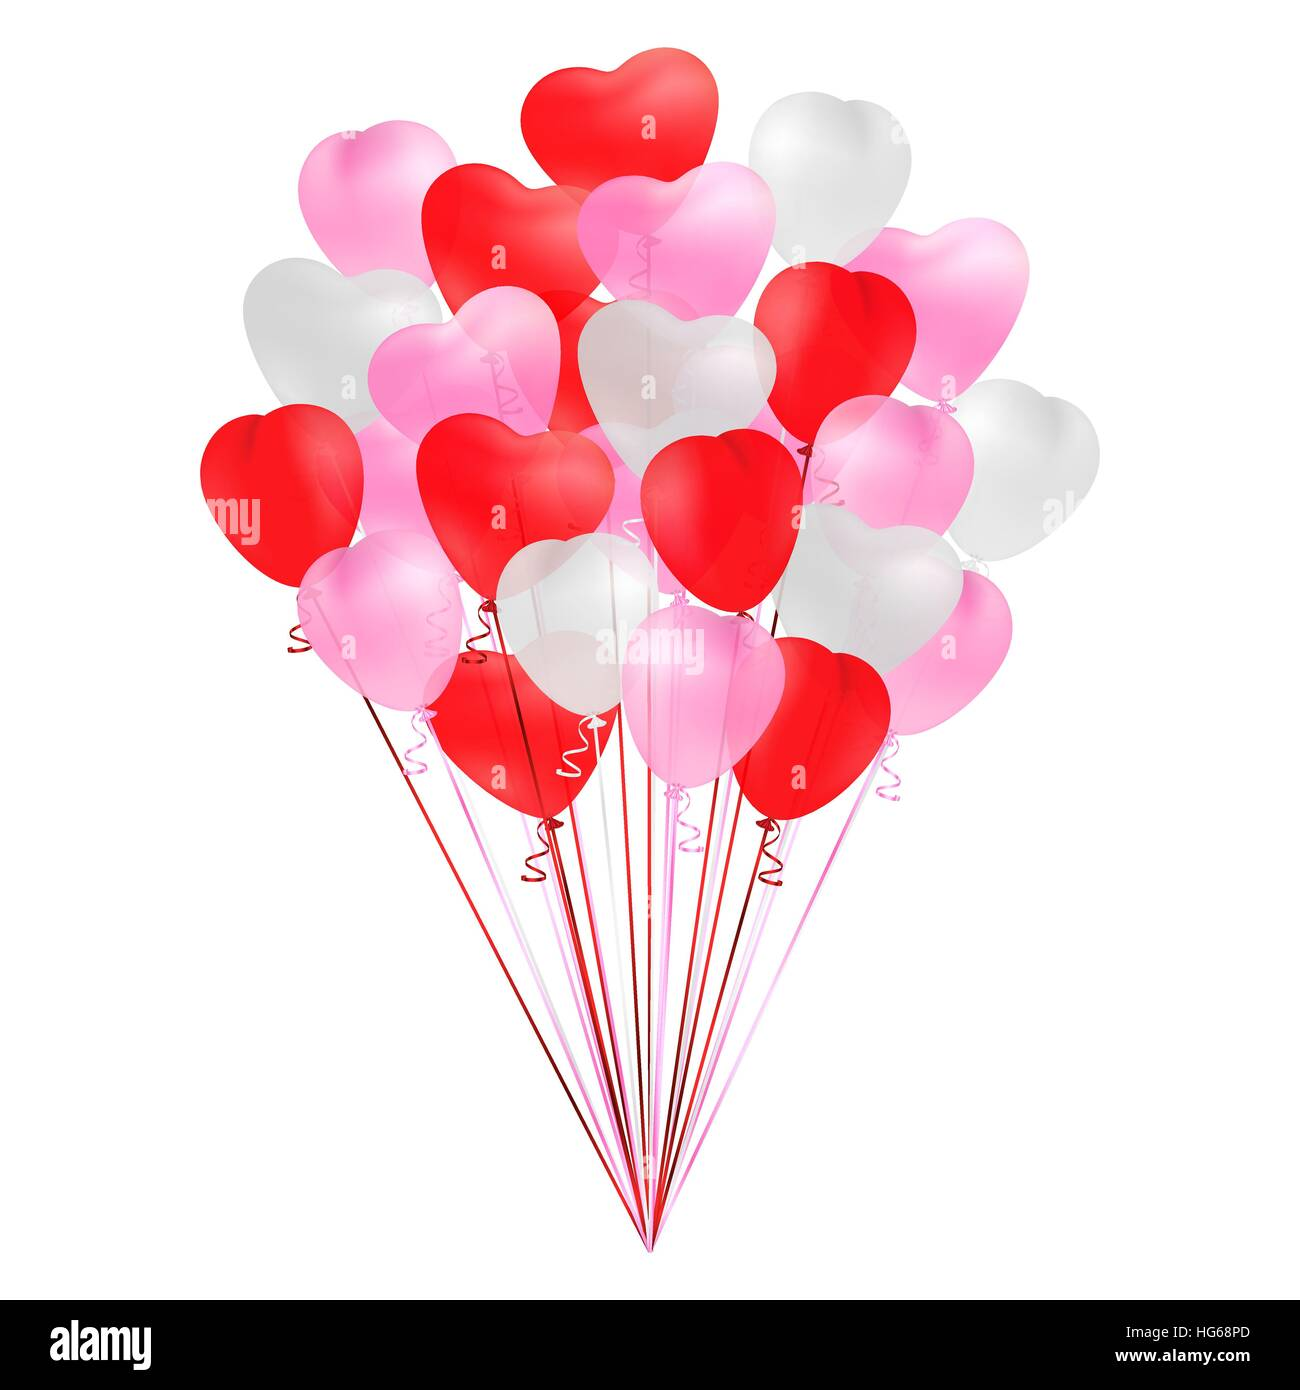 Bunch Of Transparent Realistic Heart Shaped Balloons Of Red Pink